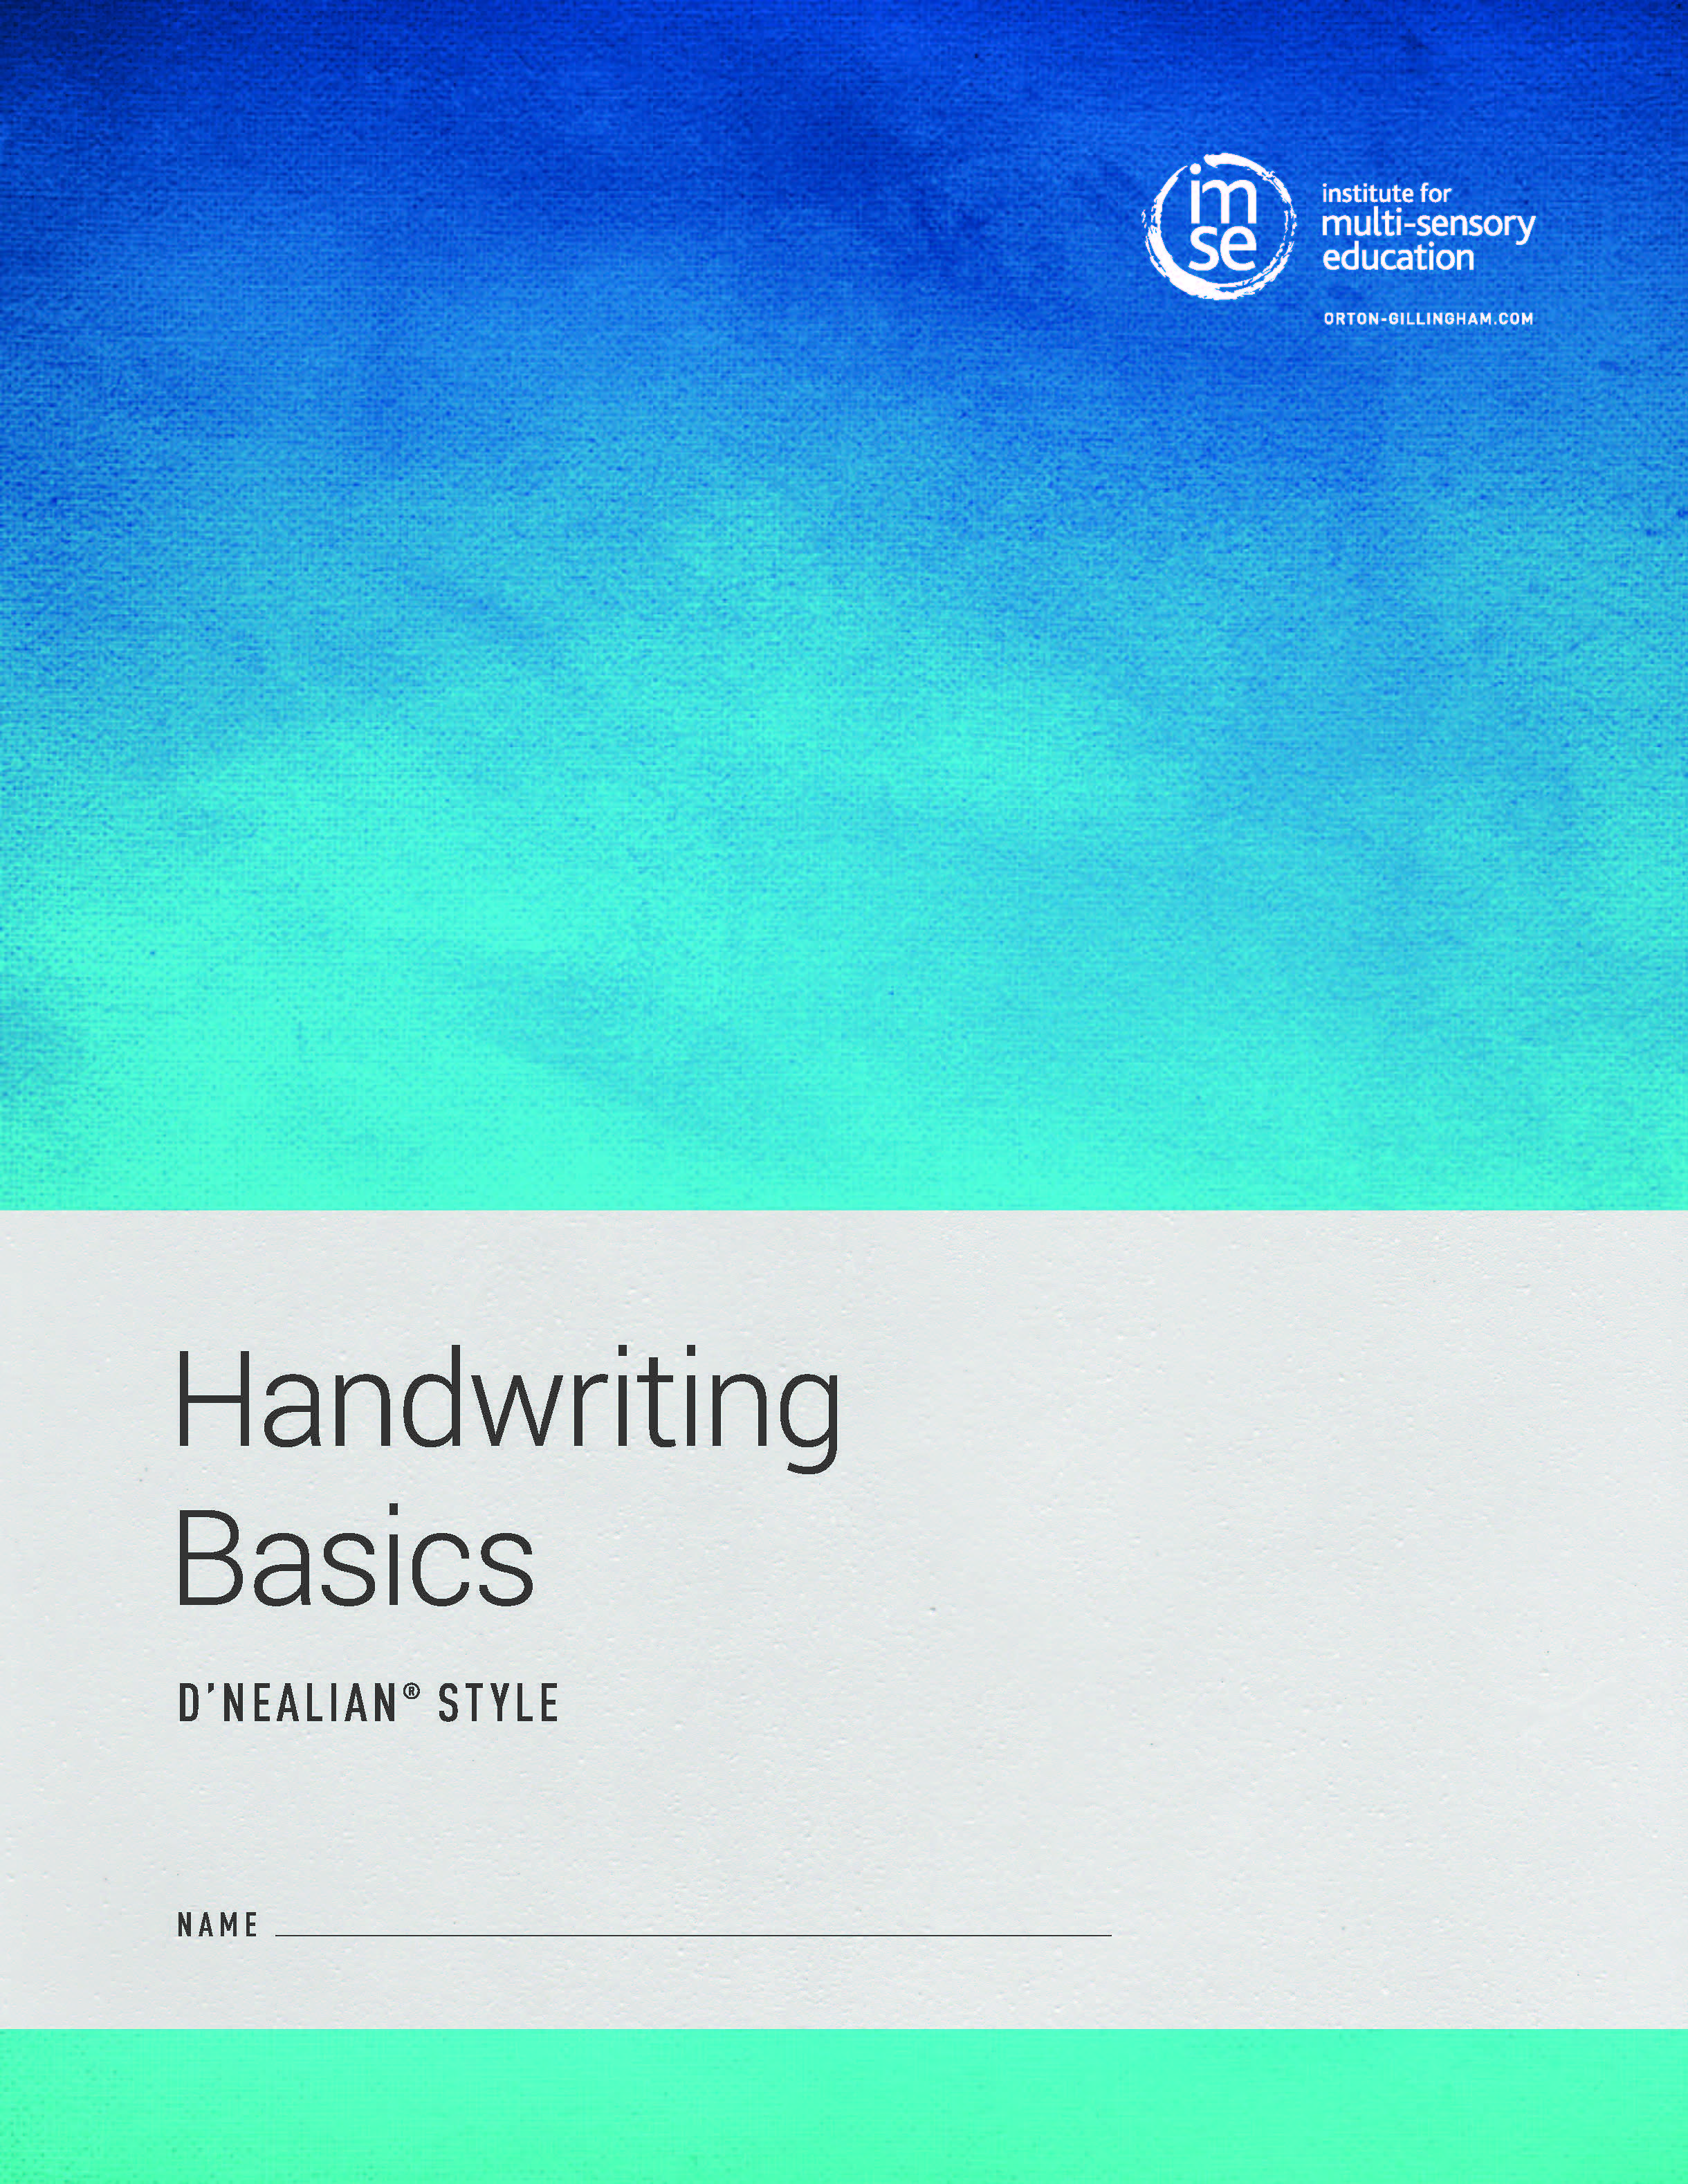 Handwriting Basics D'Nealian